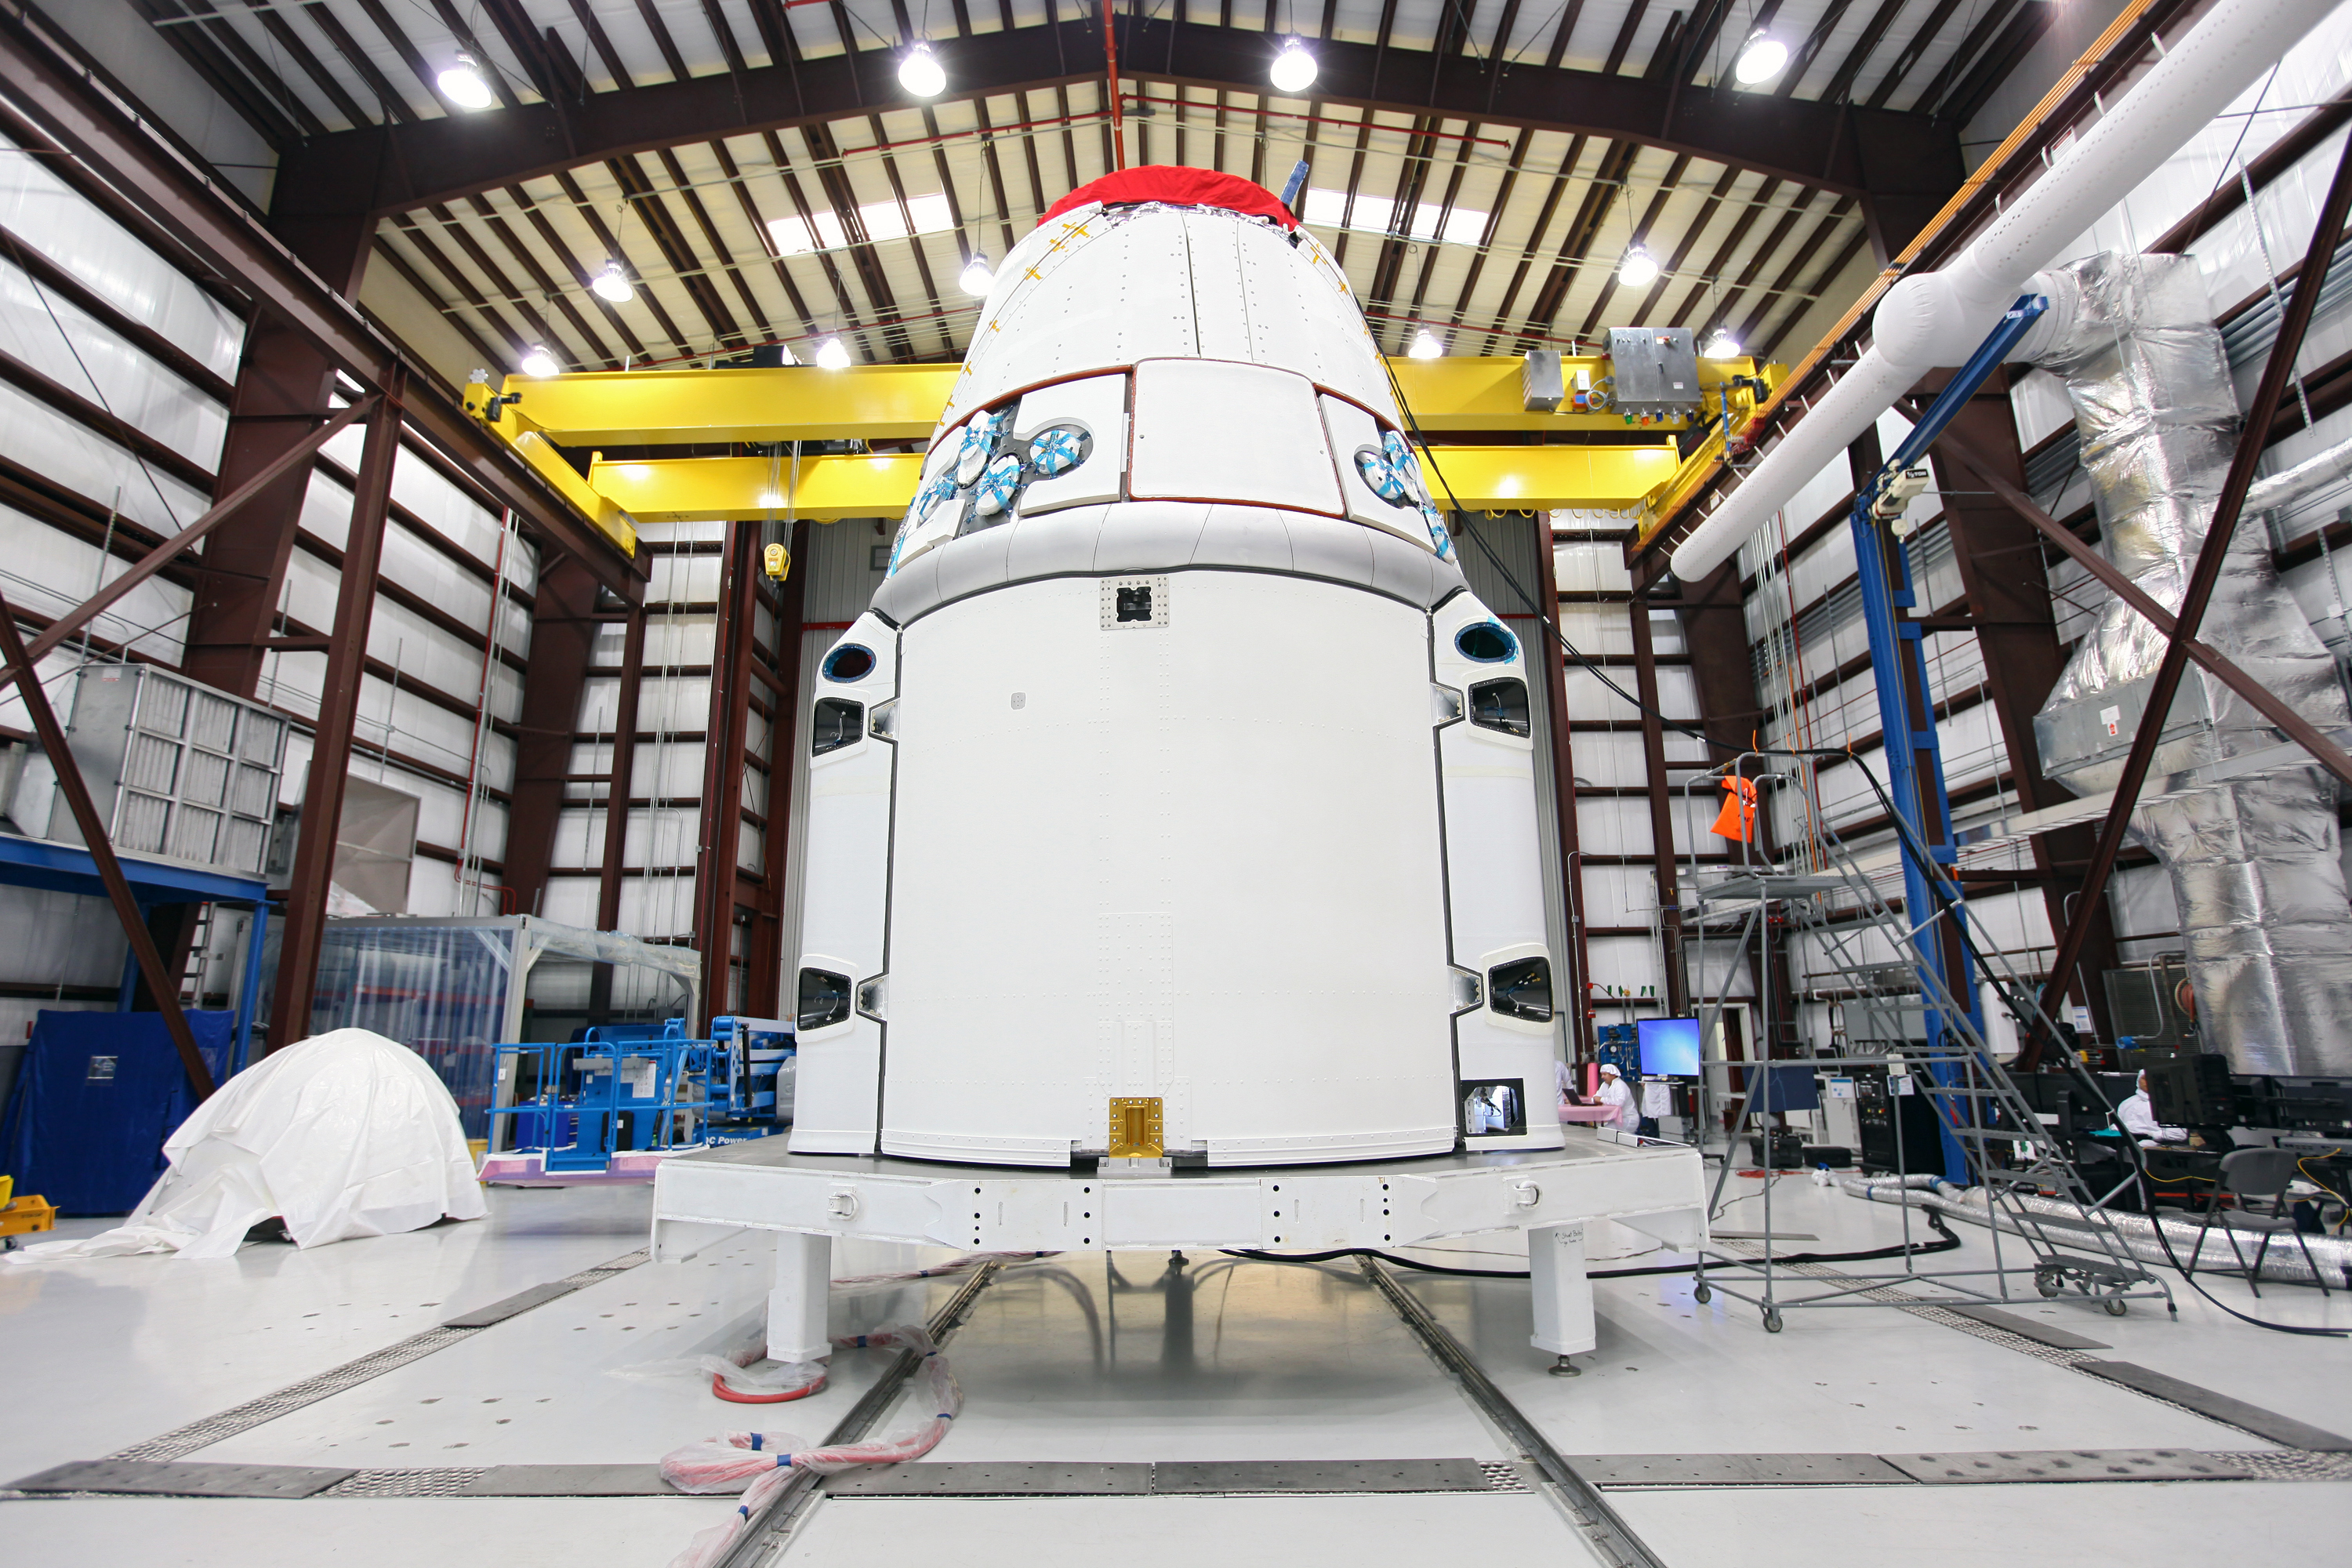 spacex dragon rocket in hanger - photo #1